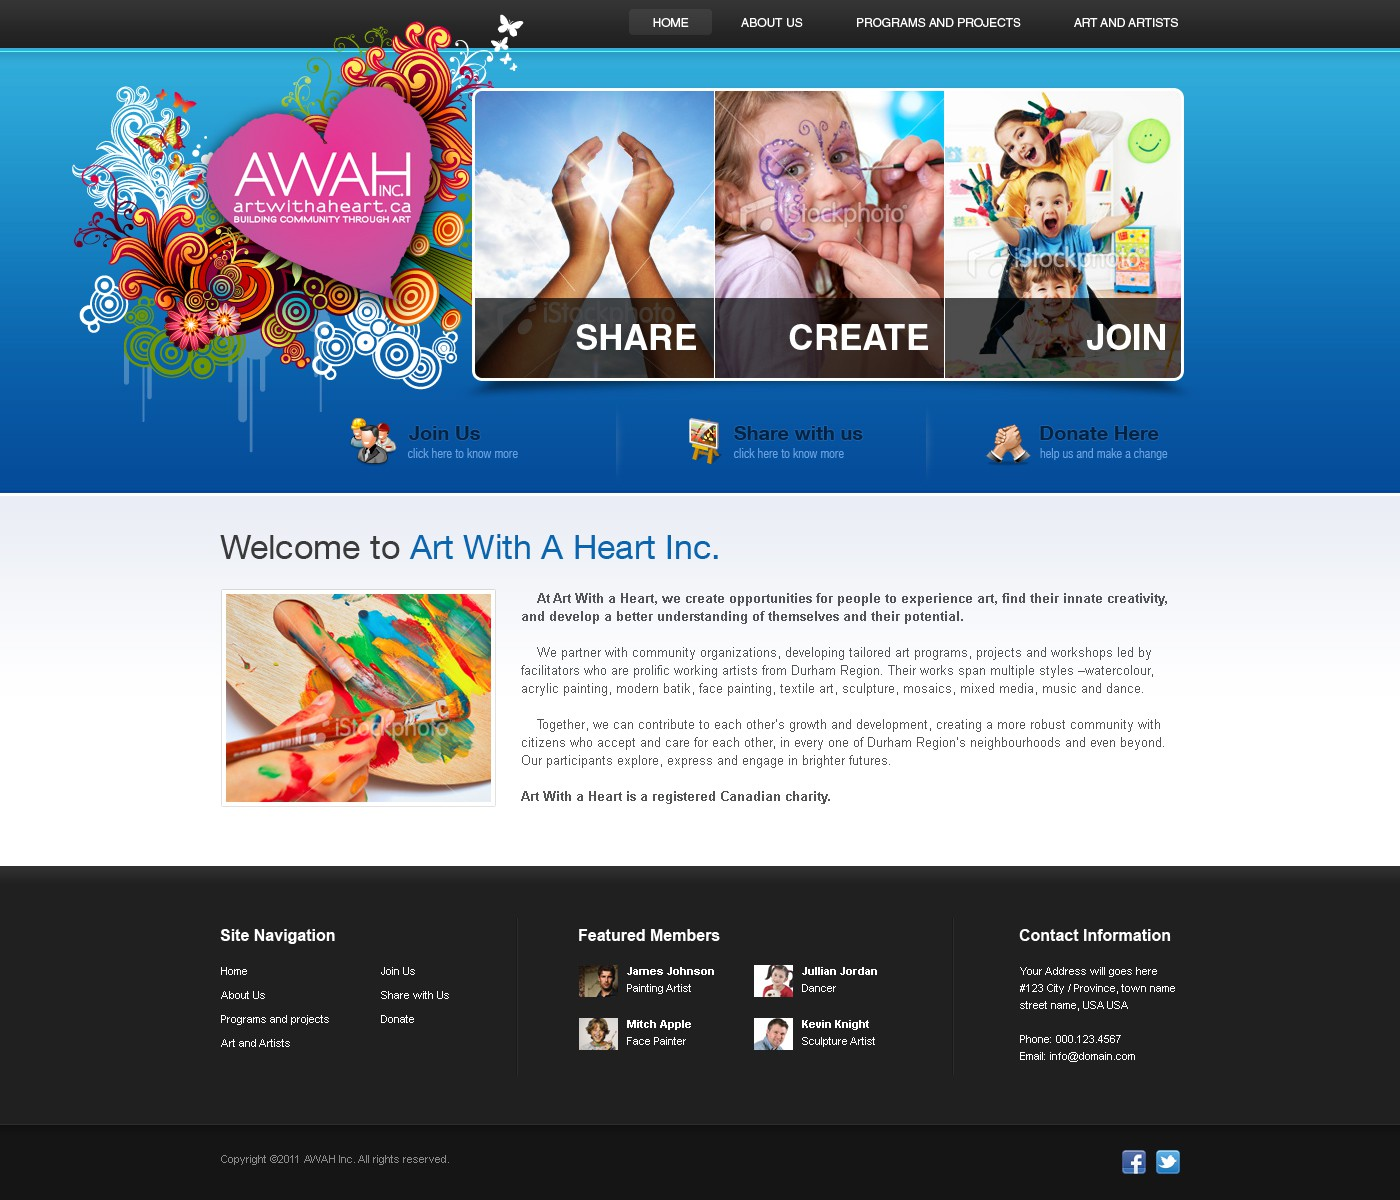 website design for Art With a Heart Inc.